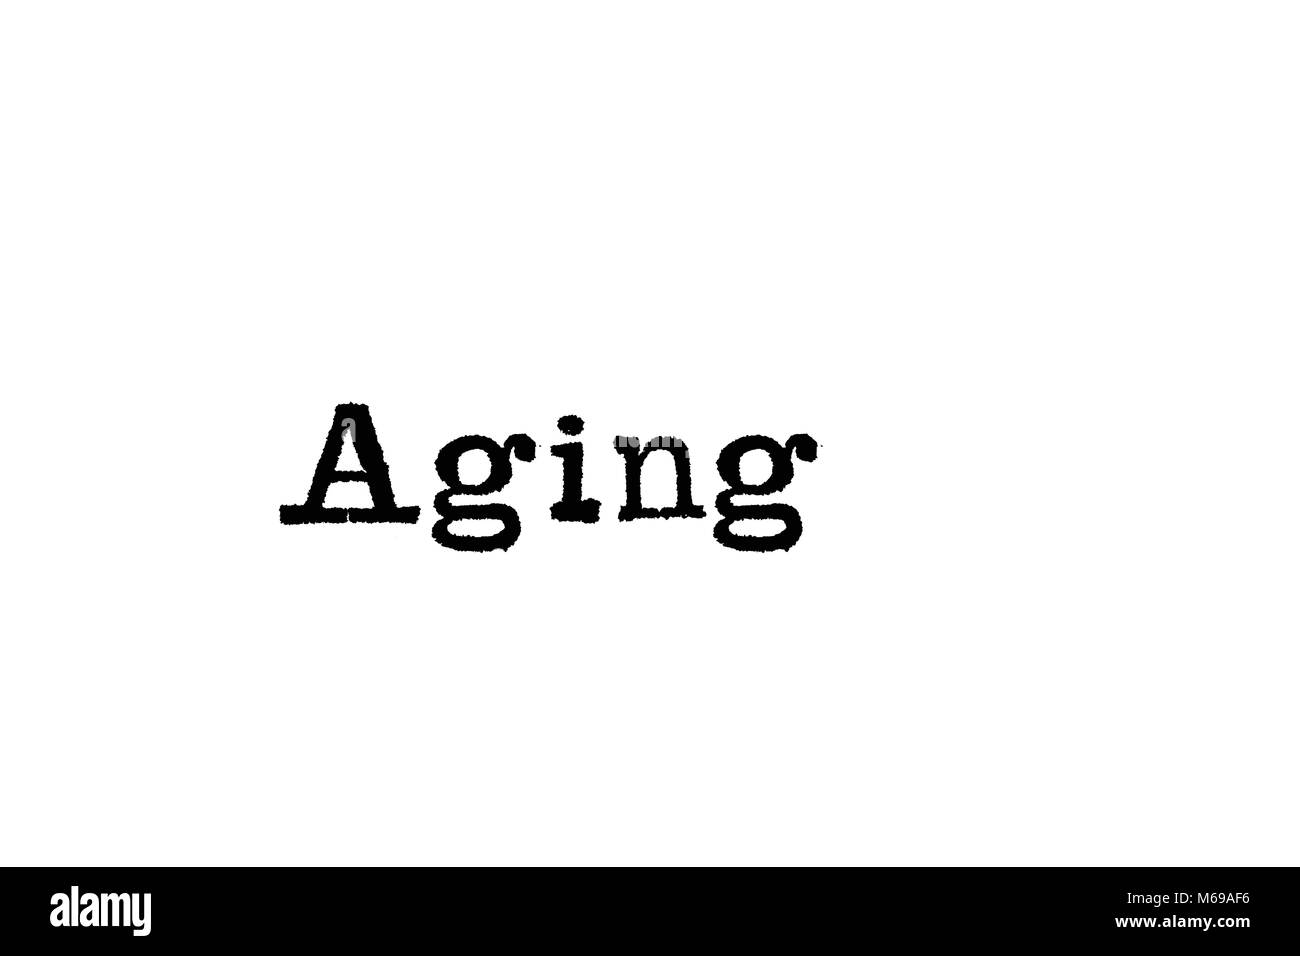 The word Aging from a typewriter on a white background - Stock Image